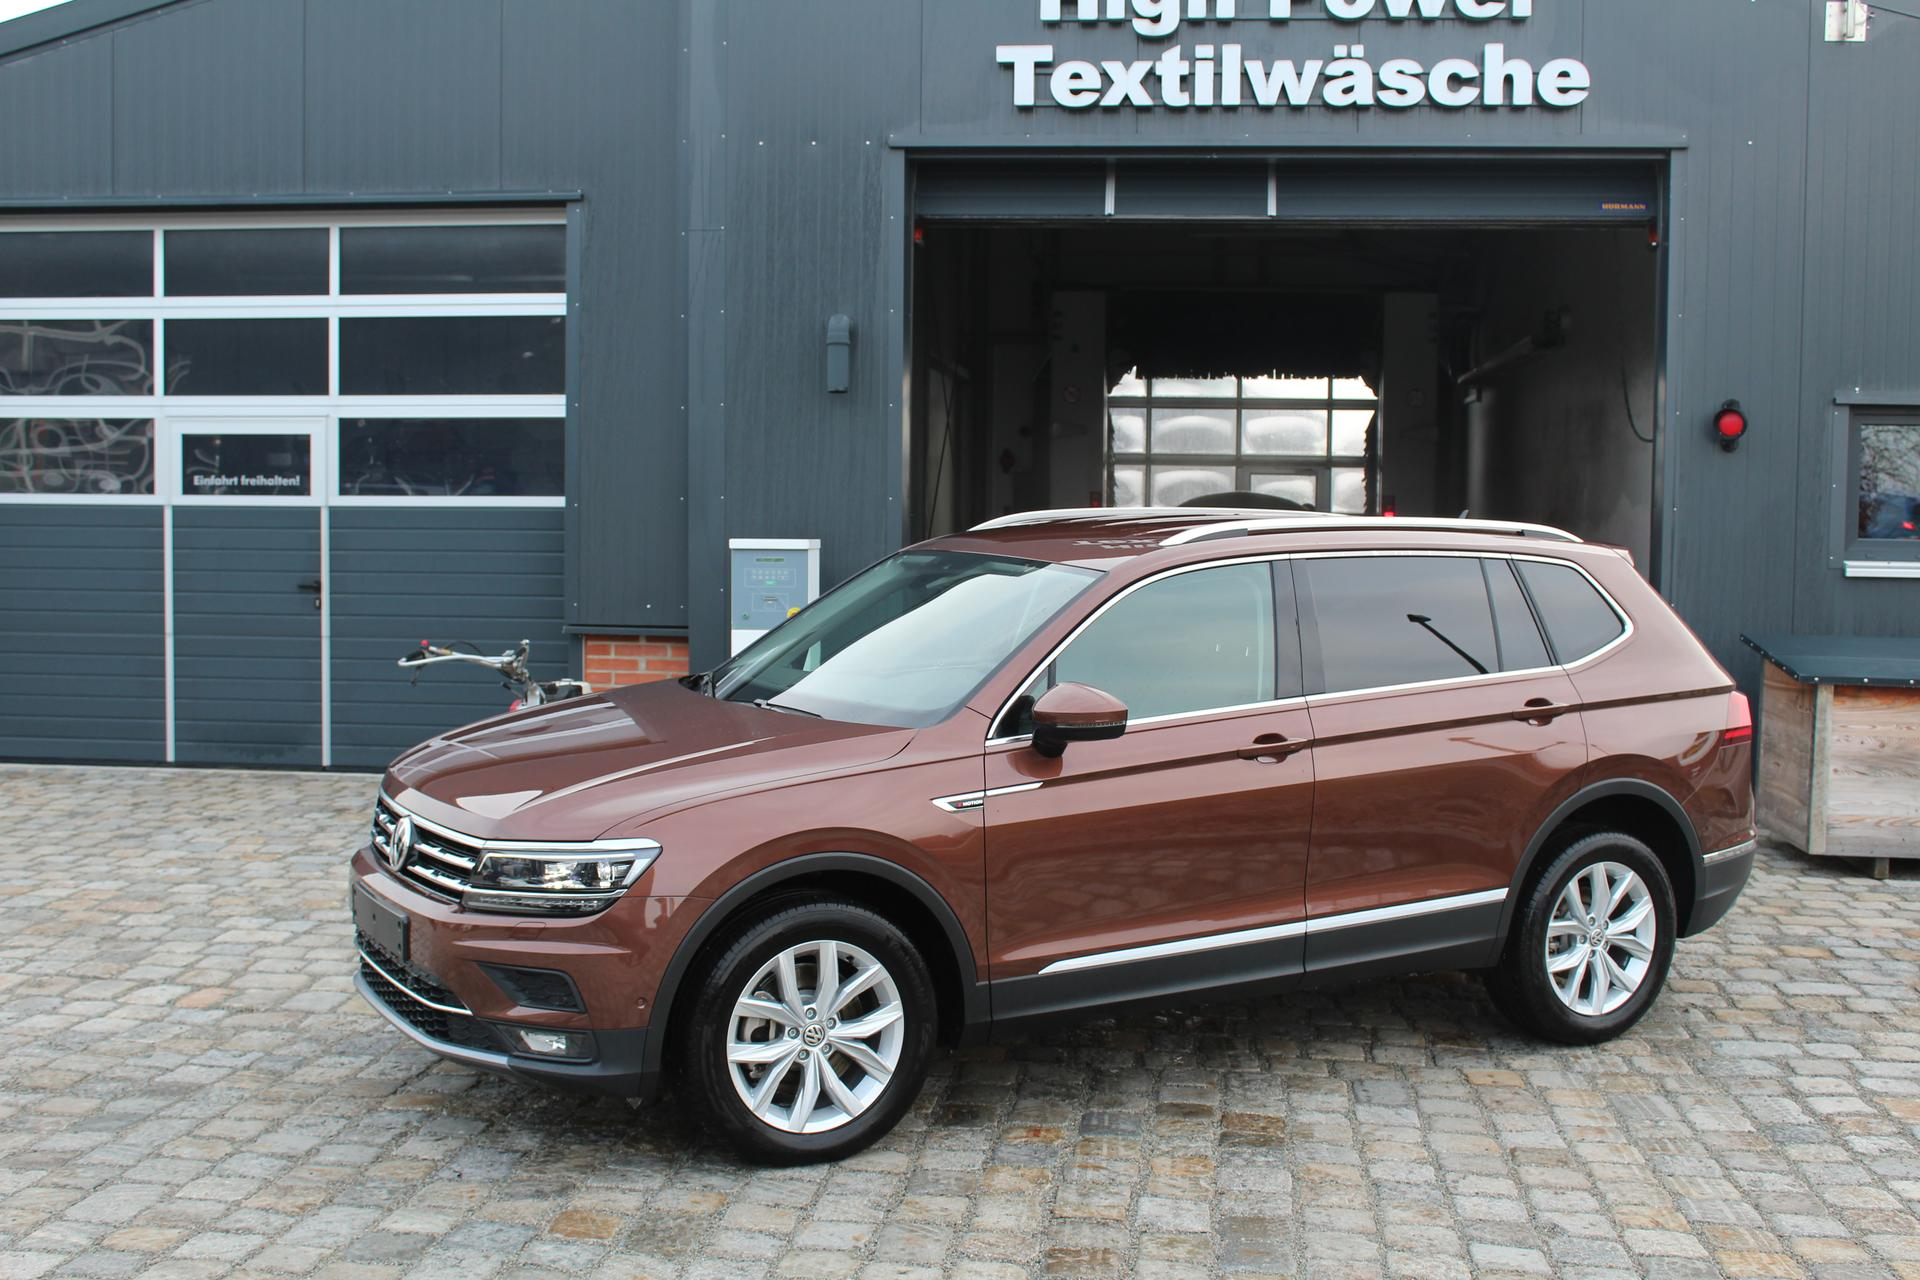 volkswagen tiguan 2 0 tdi 190 ps 4x4 dsg allspace highline 7 sitzer top ausstattung top angebot. Black Bedroom Furniture Sets. Home Design Ideas